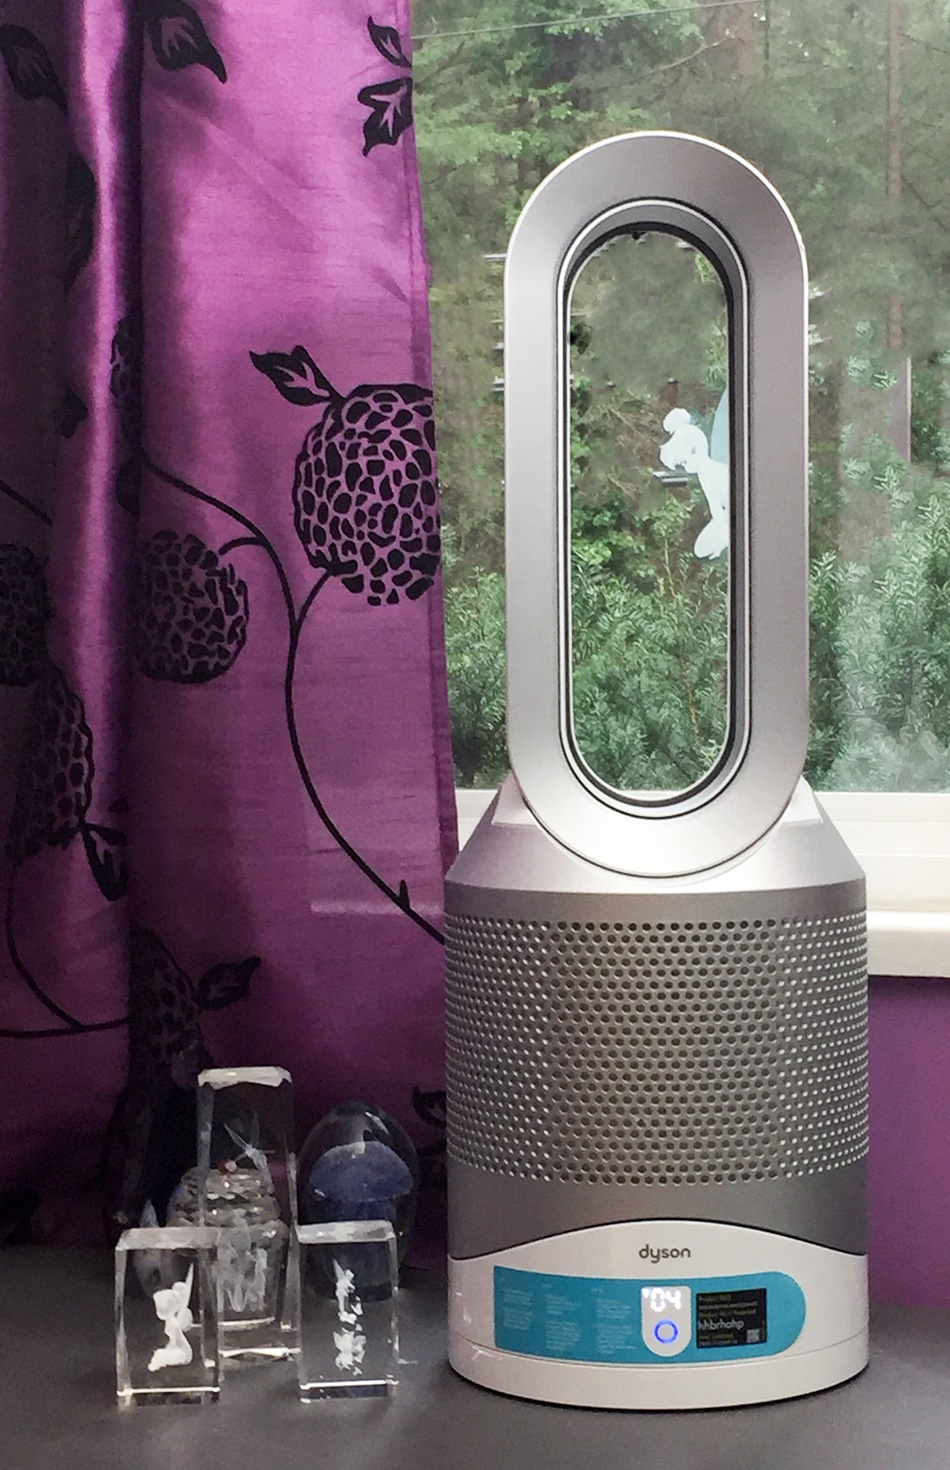 Dyson Pure Hot Cool Link Air Purifier and Fan